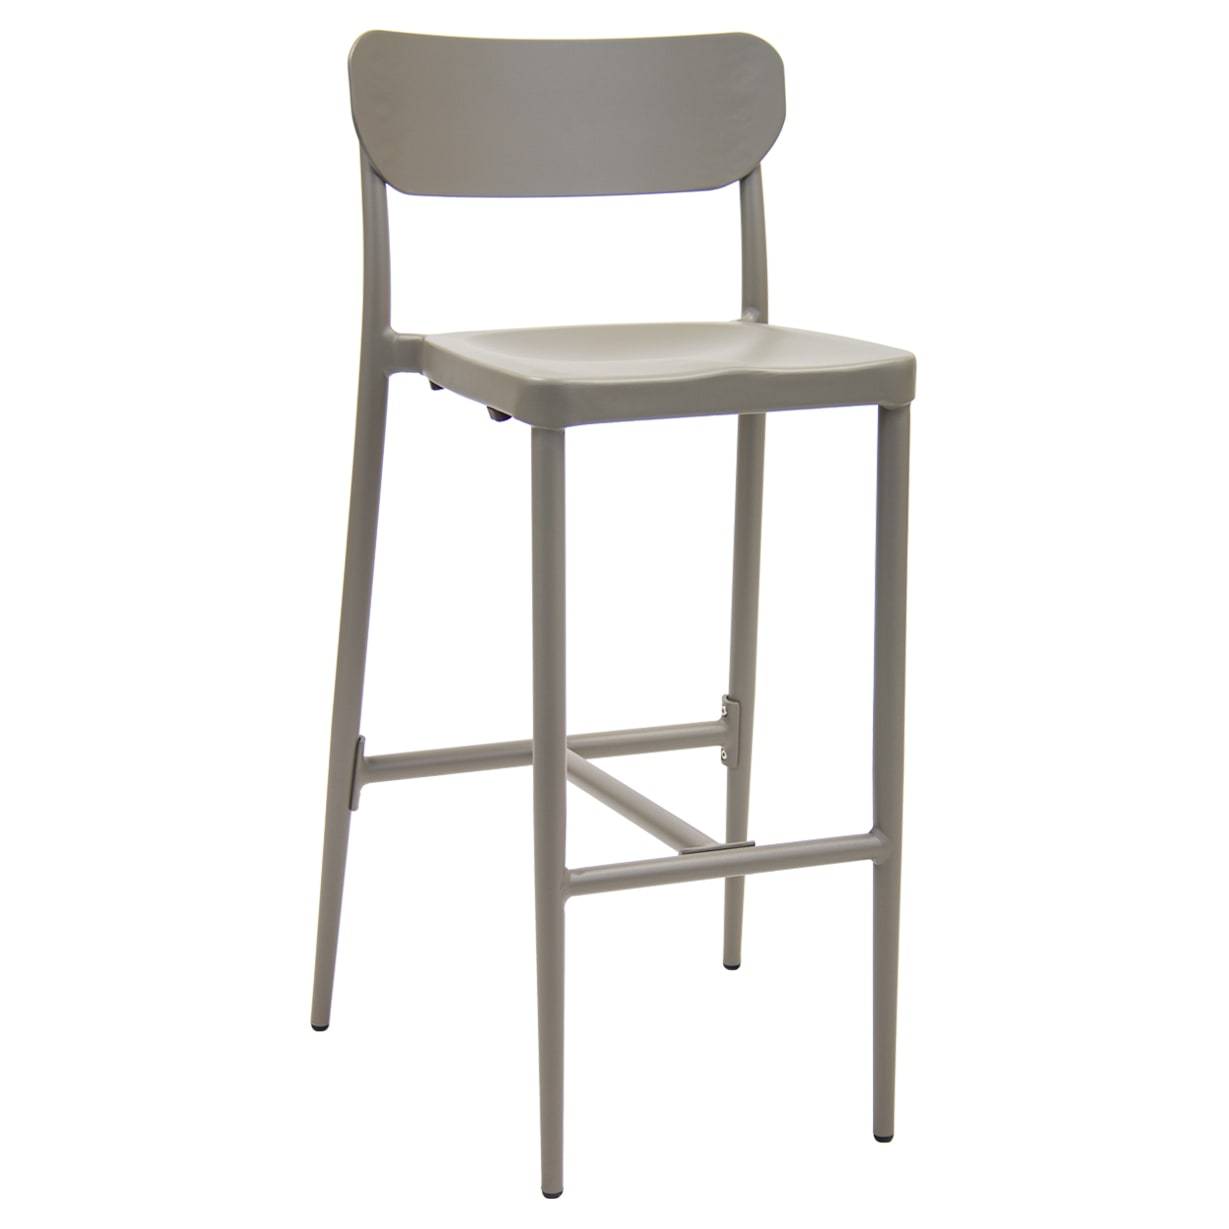 Modern Style Gray Aluminum Patio Bar Stool